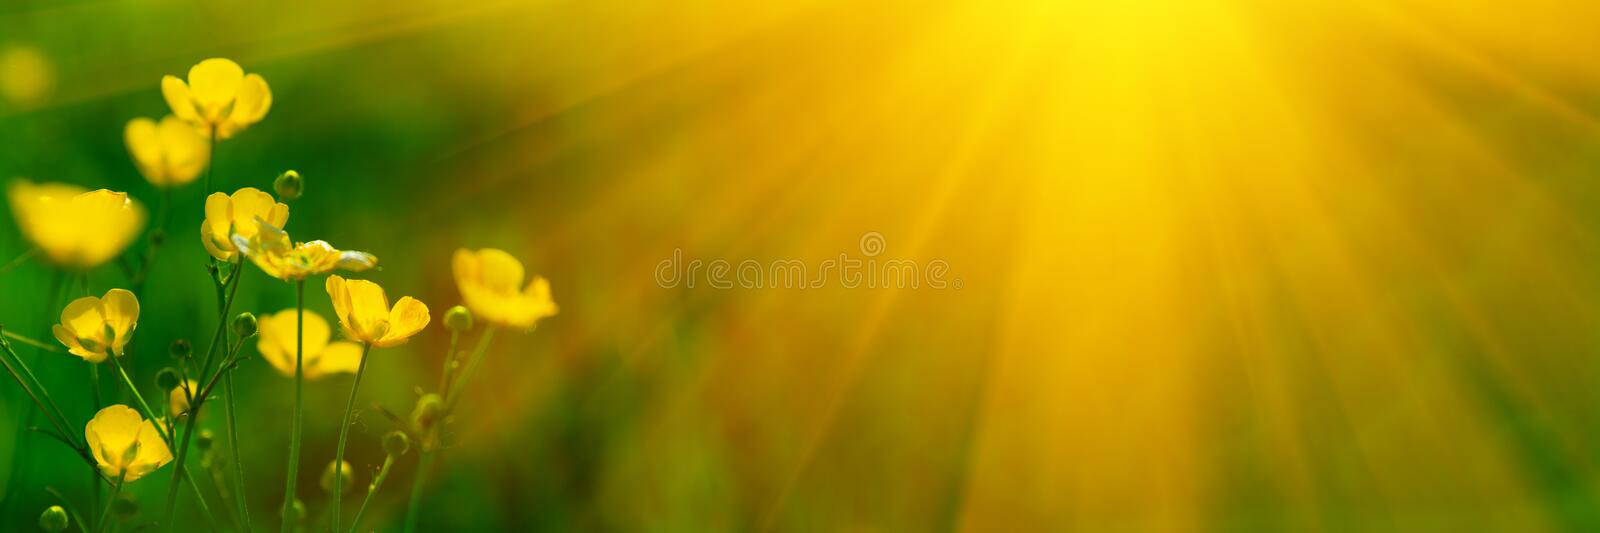 Banner 3:1. Close up meadow buttercup flowers Ranunculus acris with sunlight rays. Spring background. Copy space. Soft focus stock photos